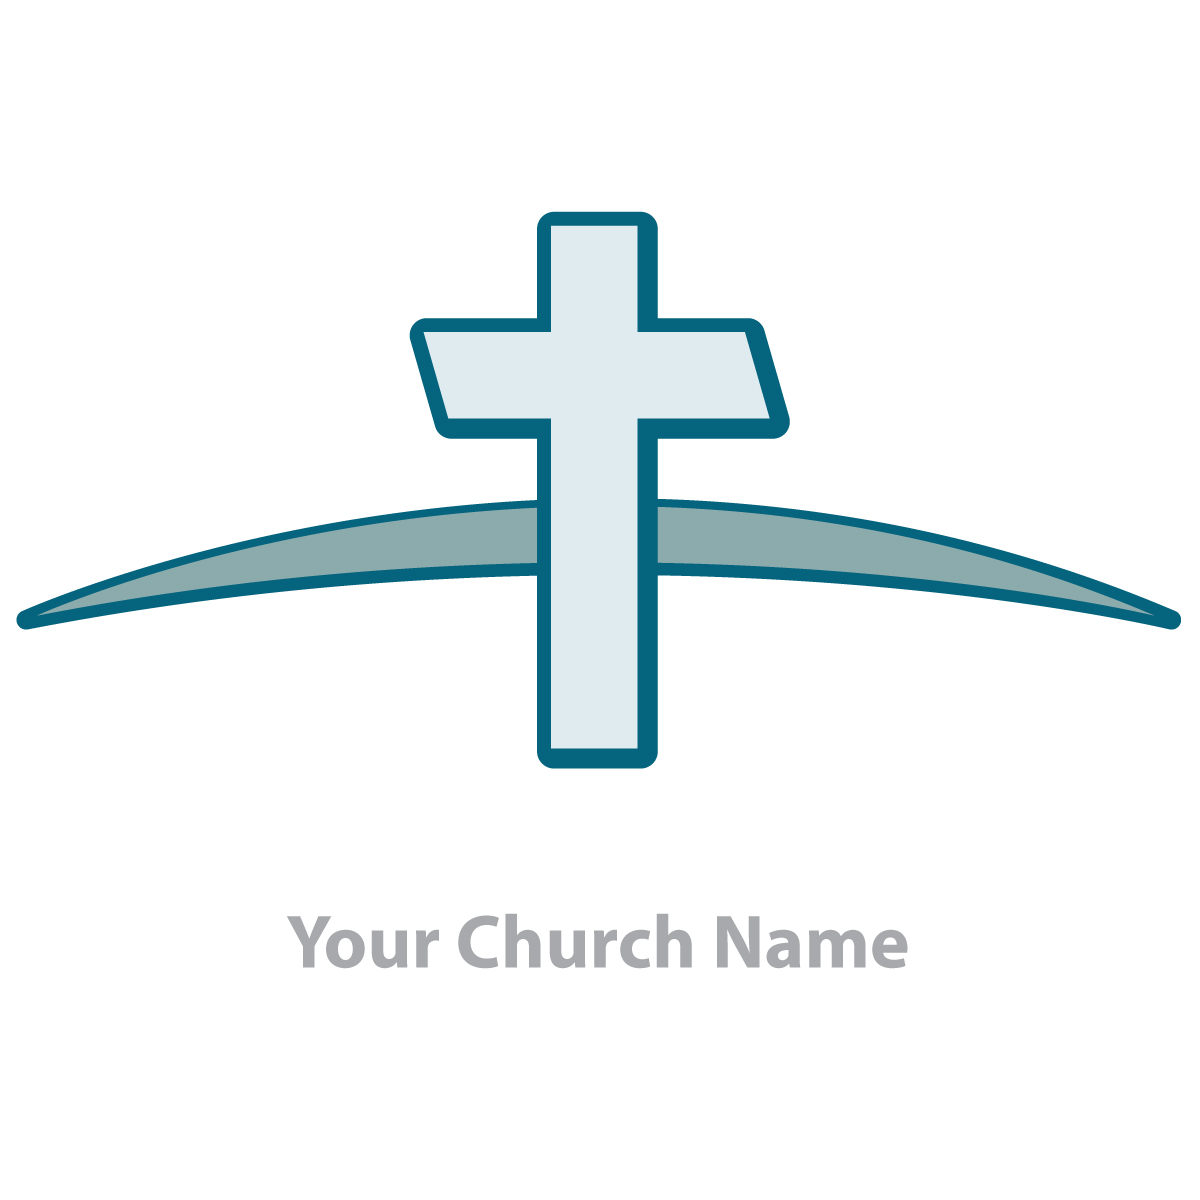 Church Graphics: Logos